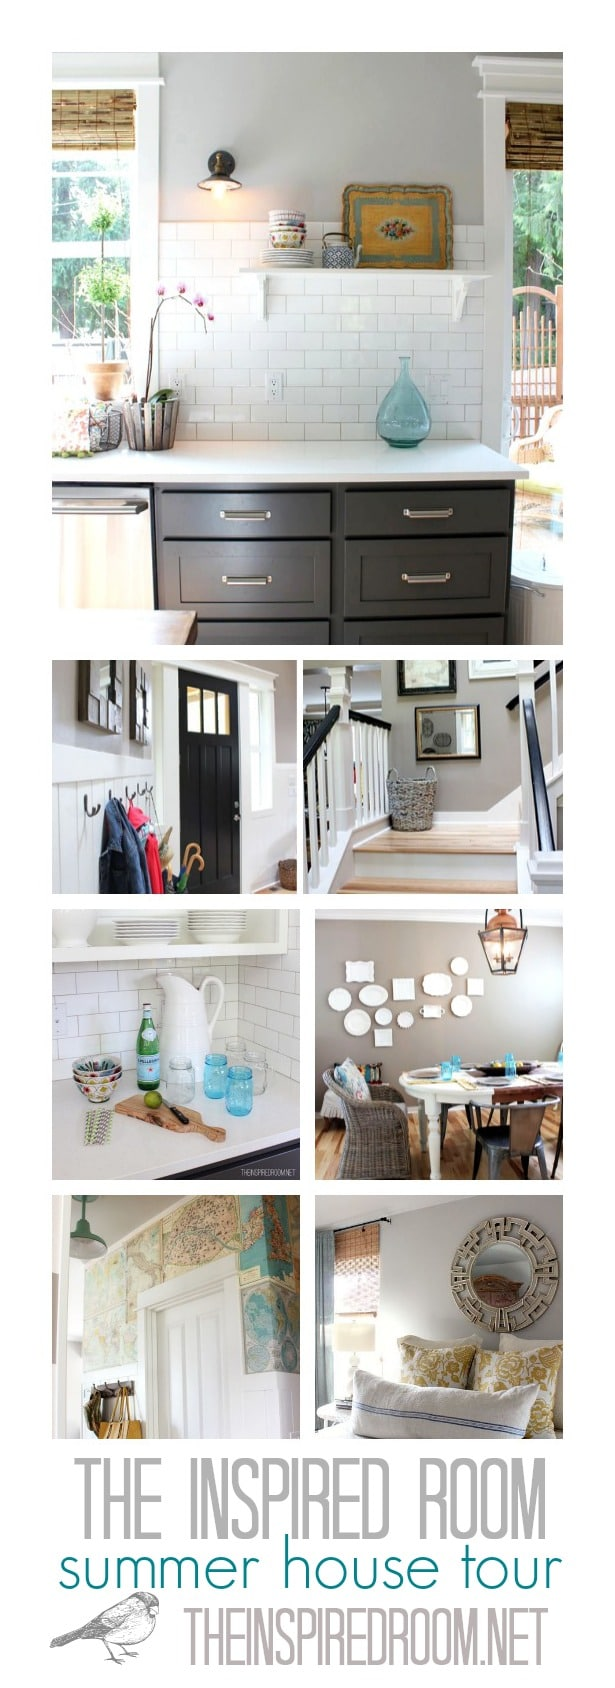 The Inspired Room Summer House Tour